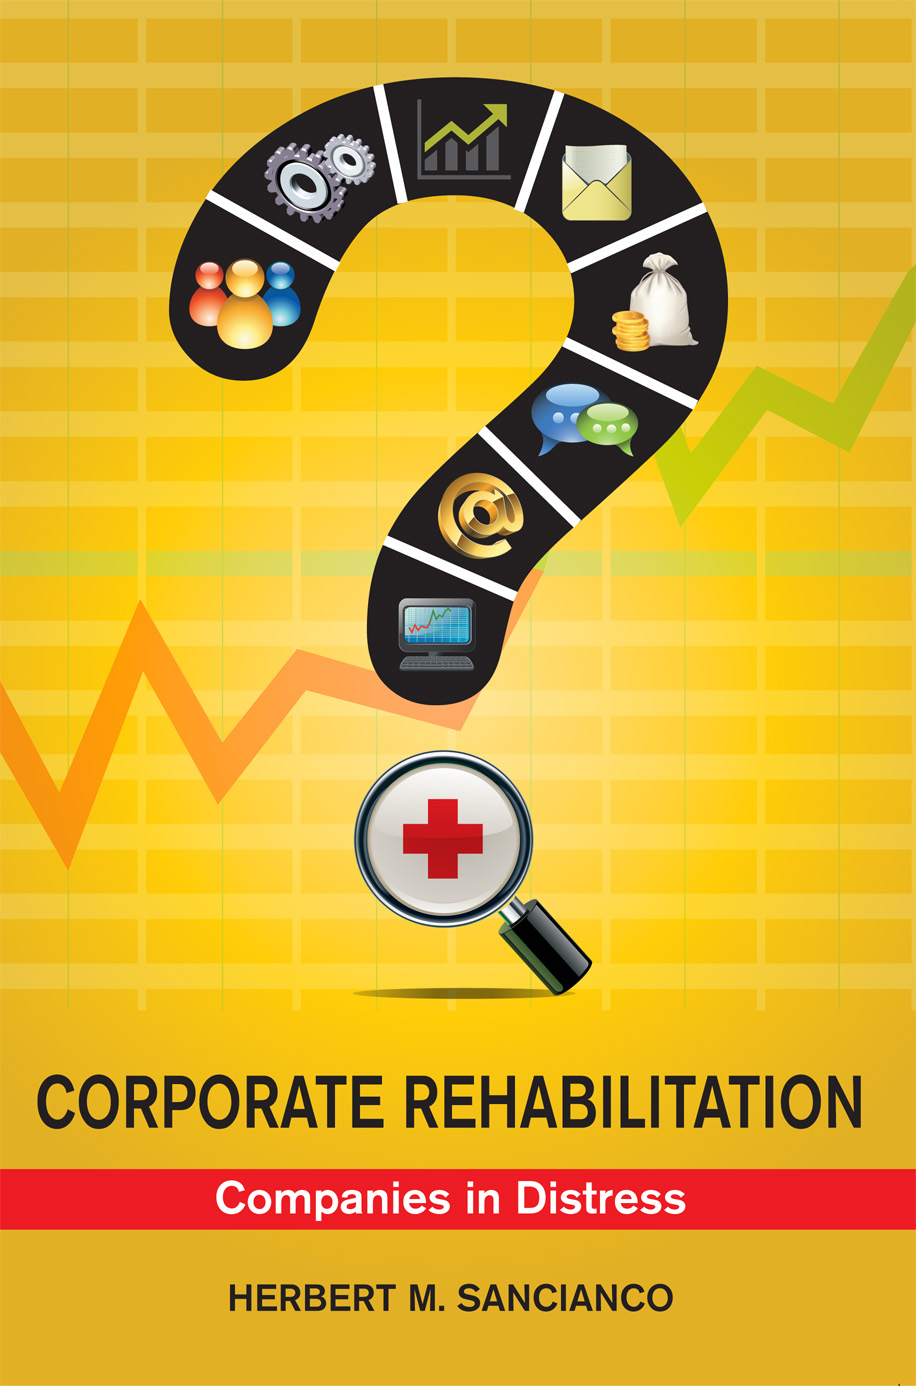 Corporate Rehabilitation: Companies in Distress